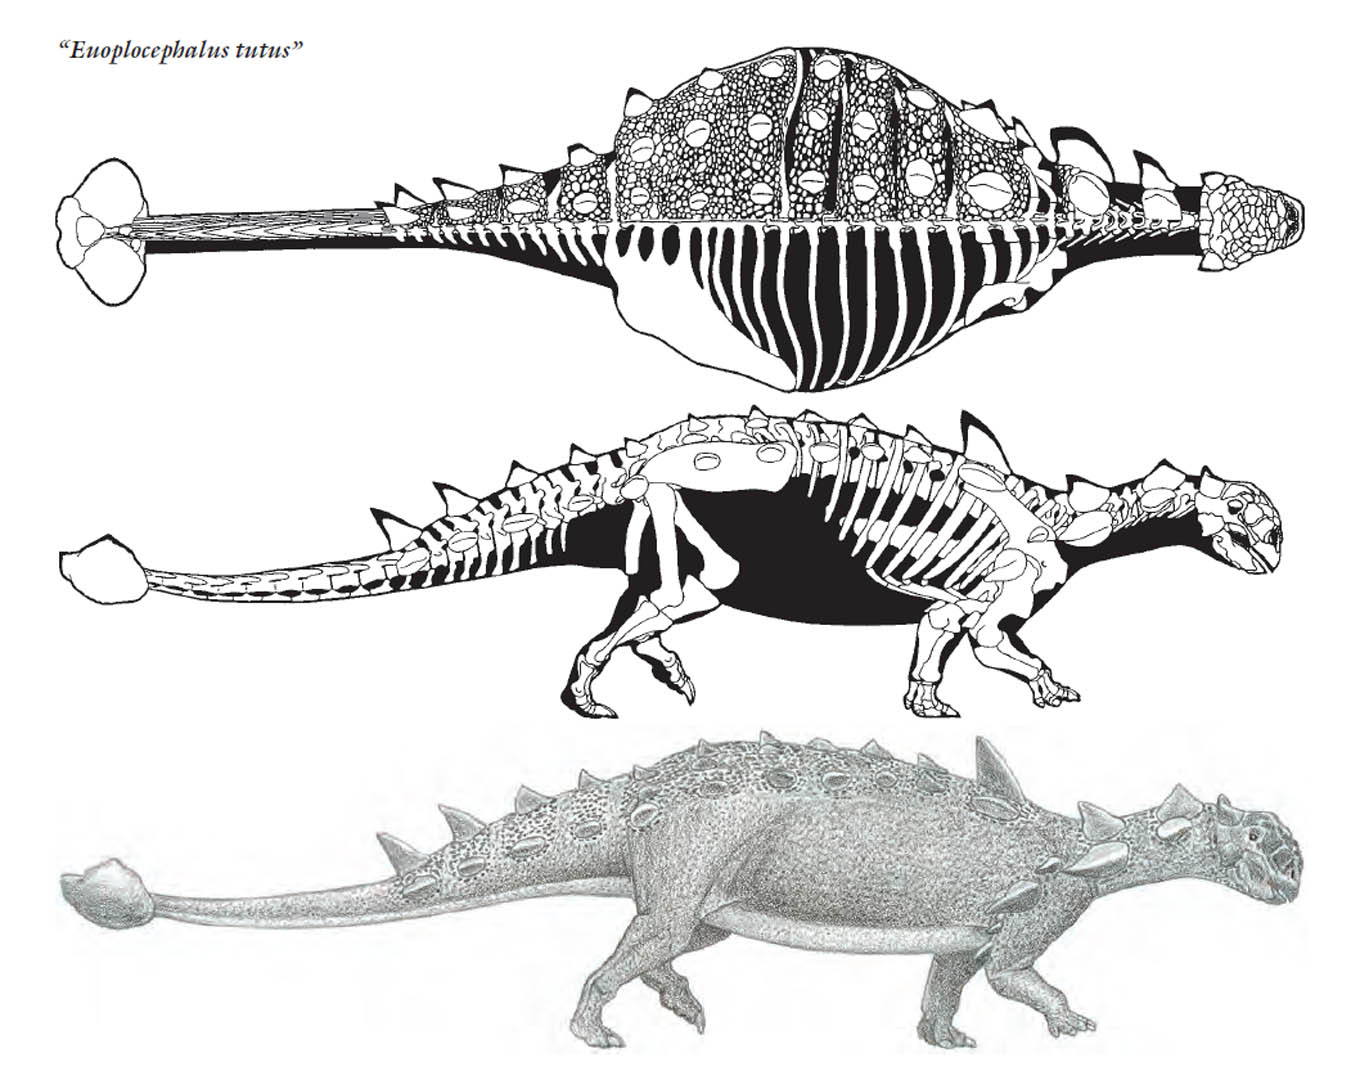 Euoplocephalus With Massive Clubbed Tail